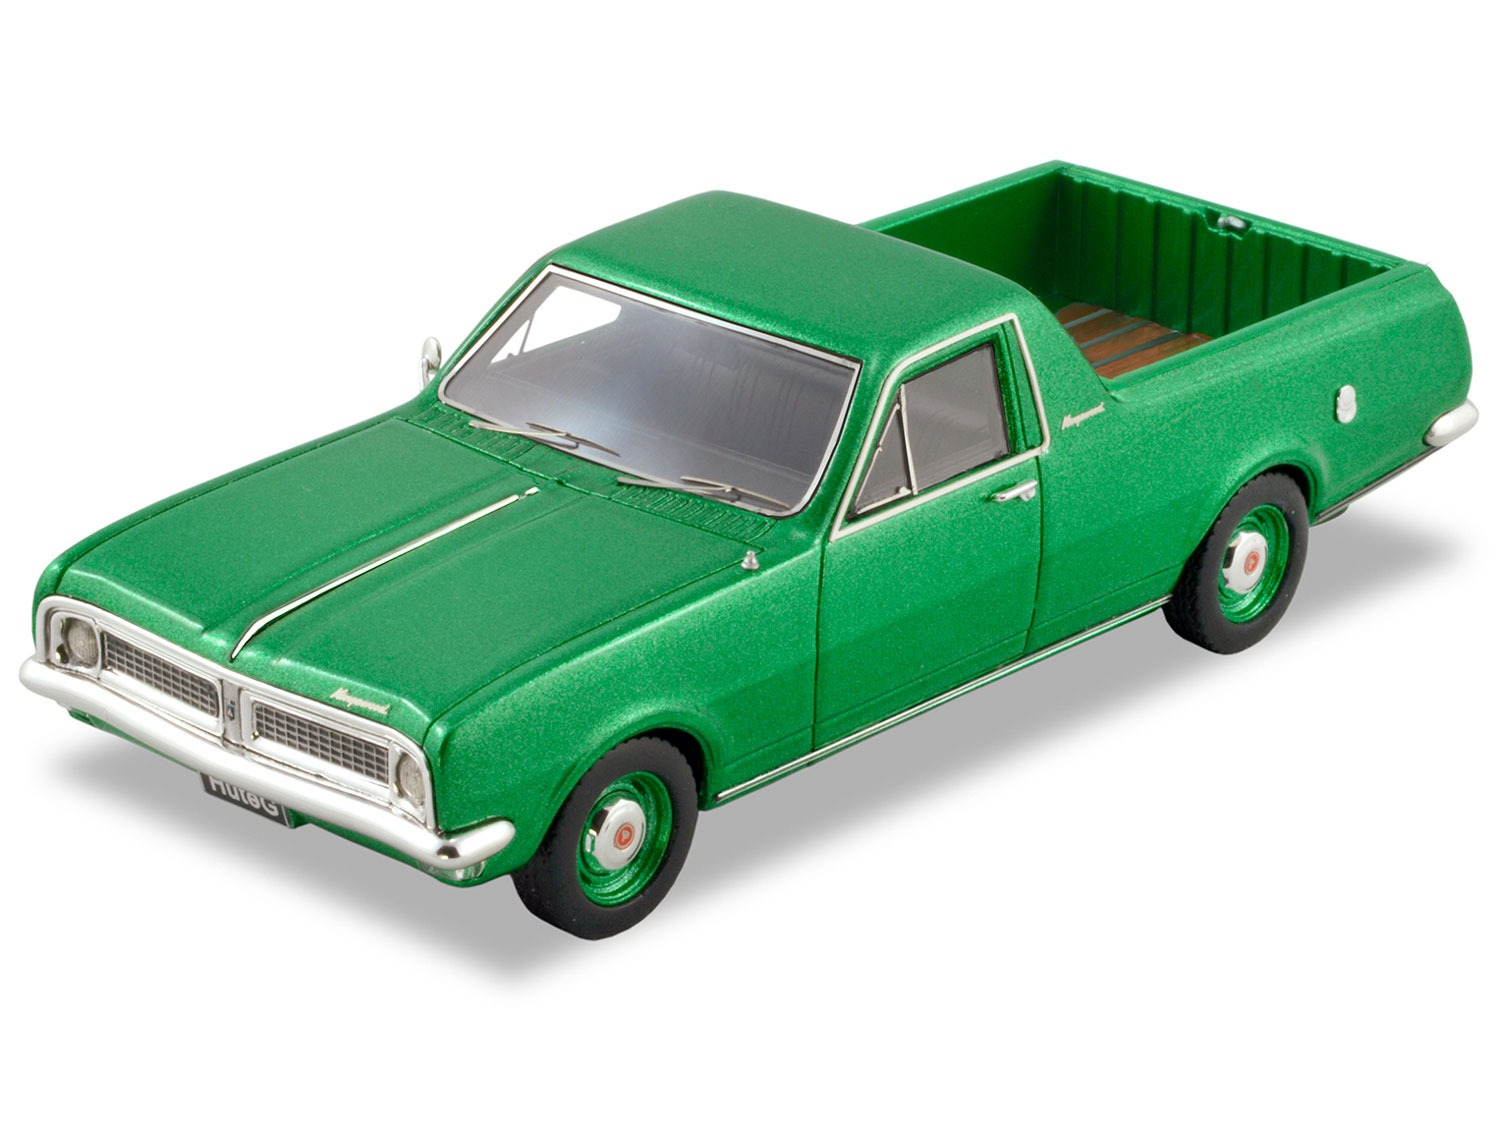 1969 Australia's Own HG Ute – Lakeside Green